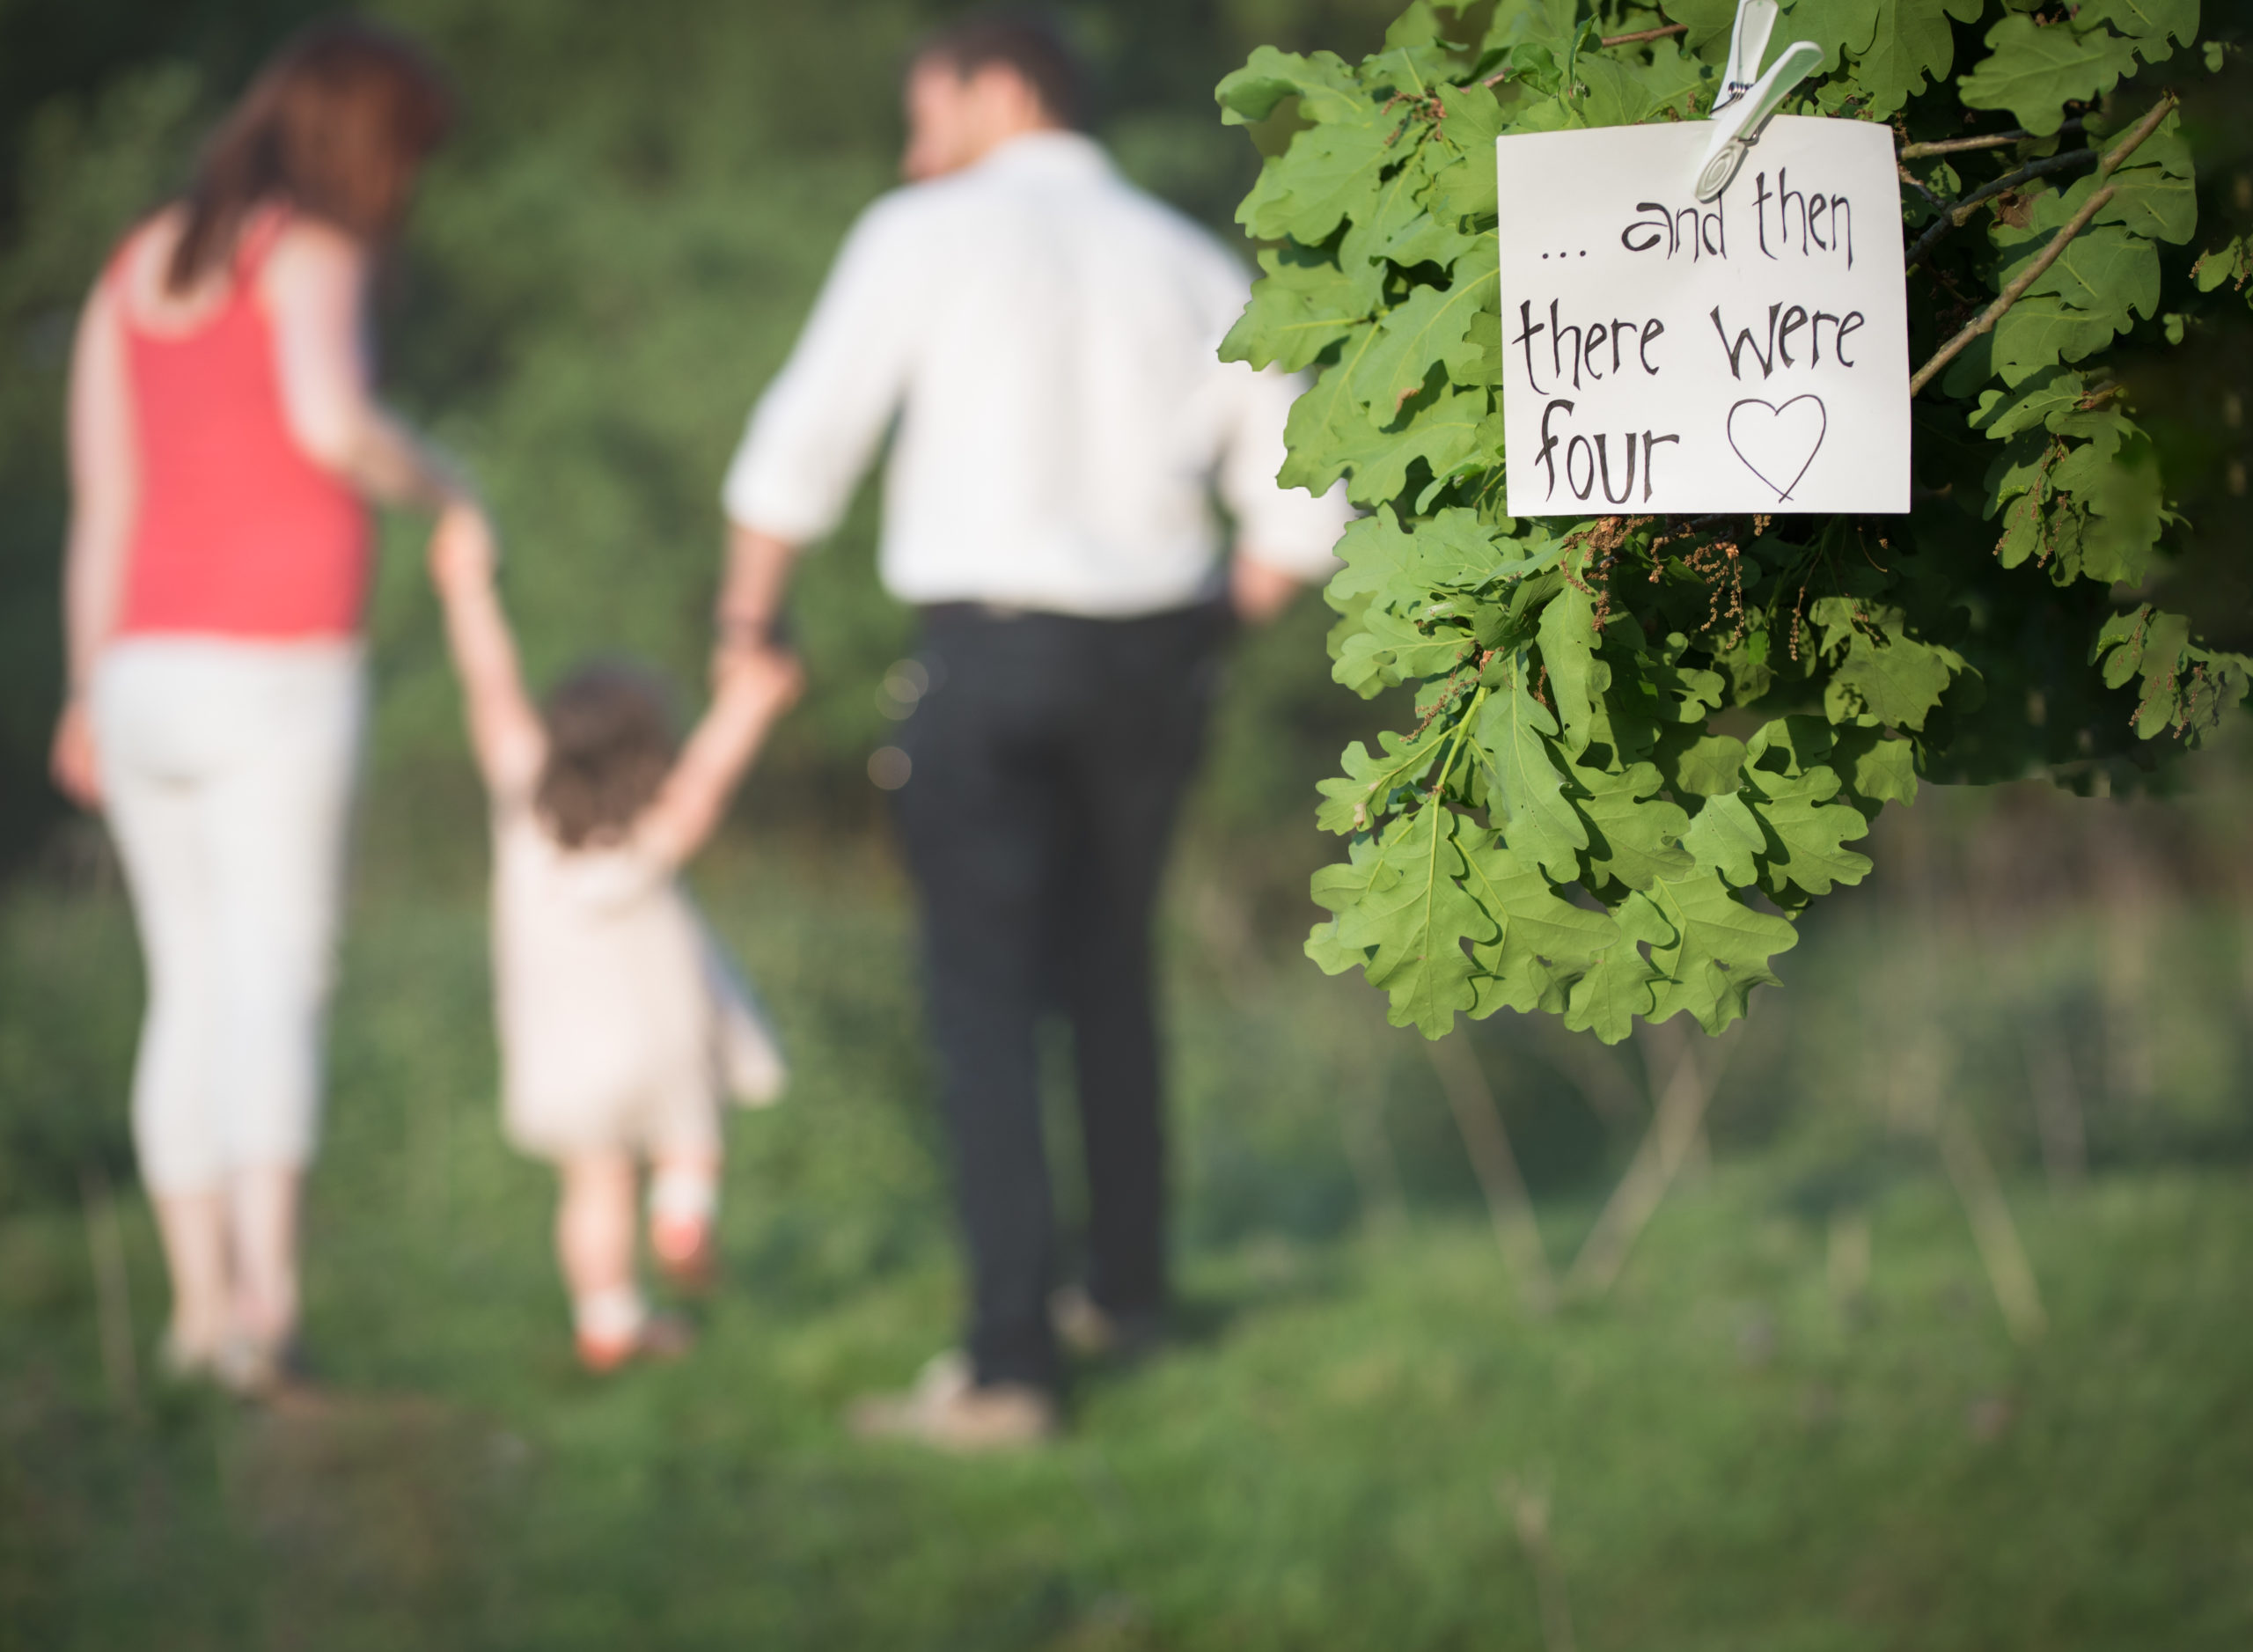 Family walk in woodland for baby reveal during photoshoot in Oxford